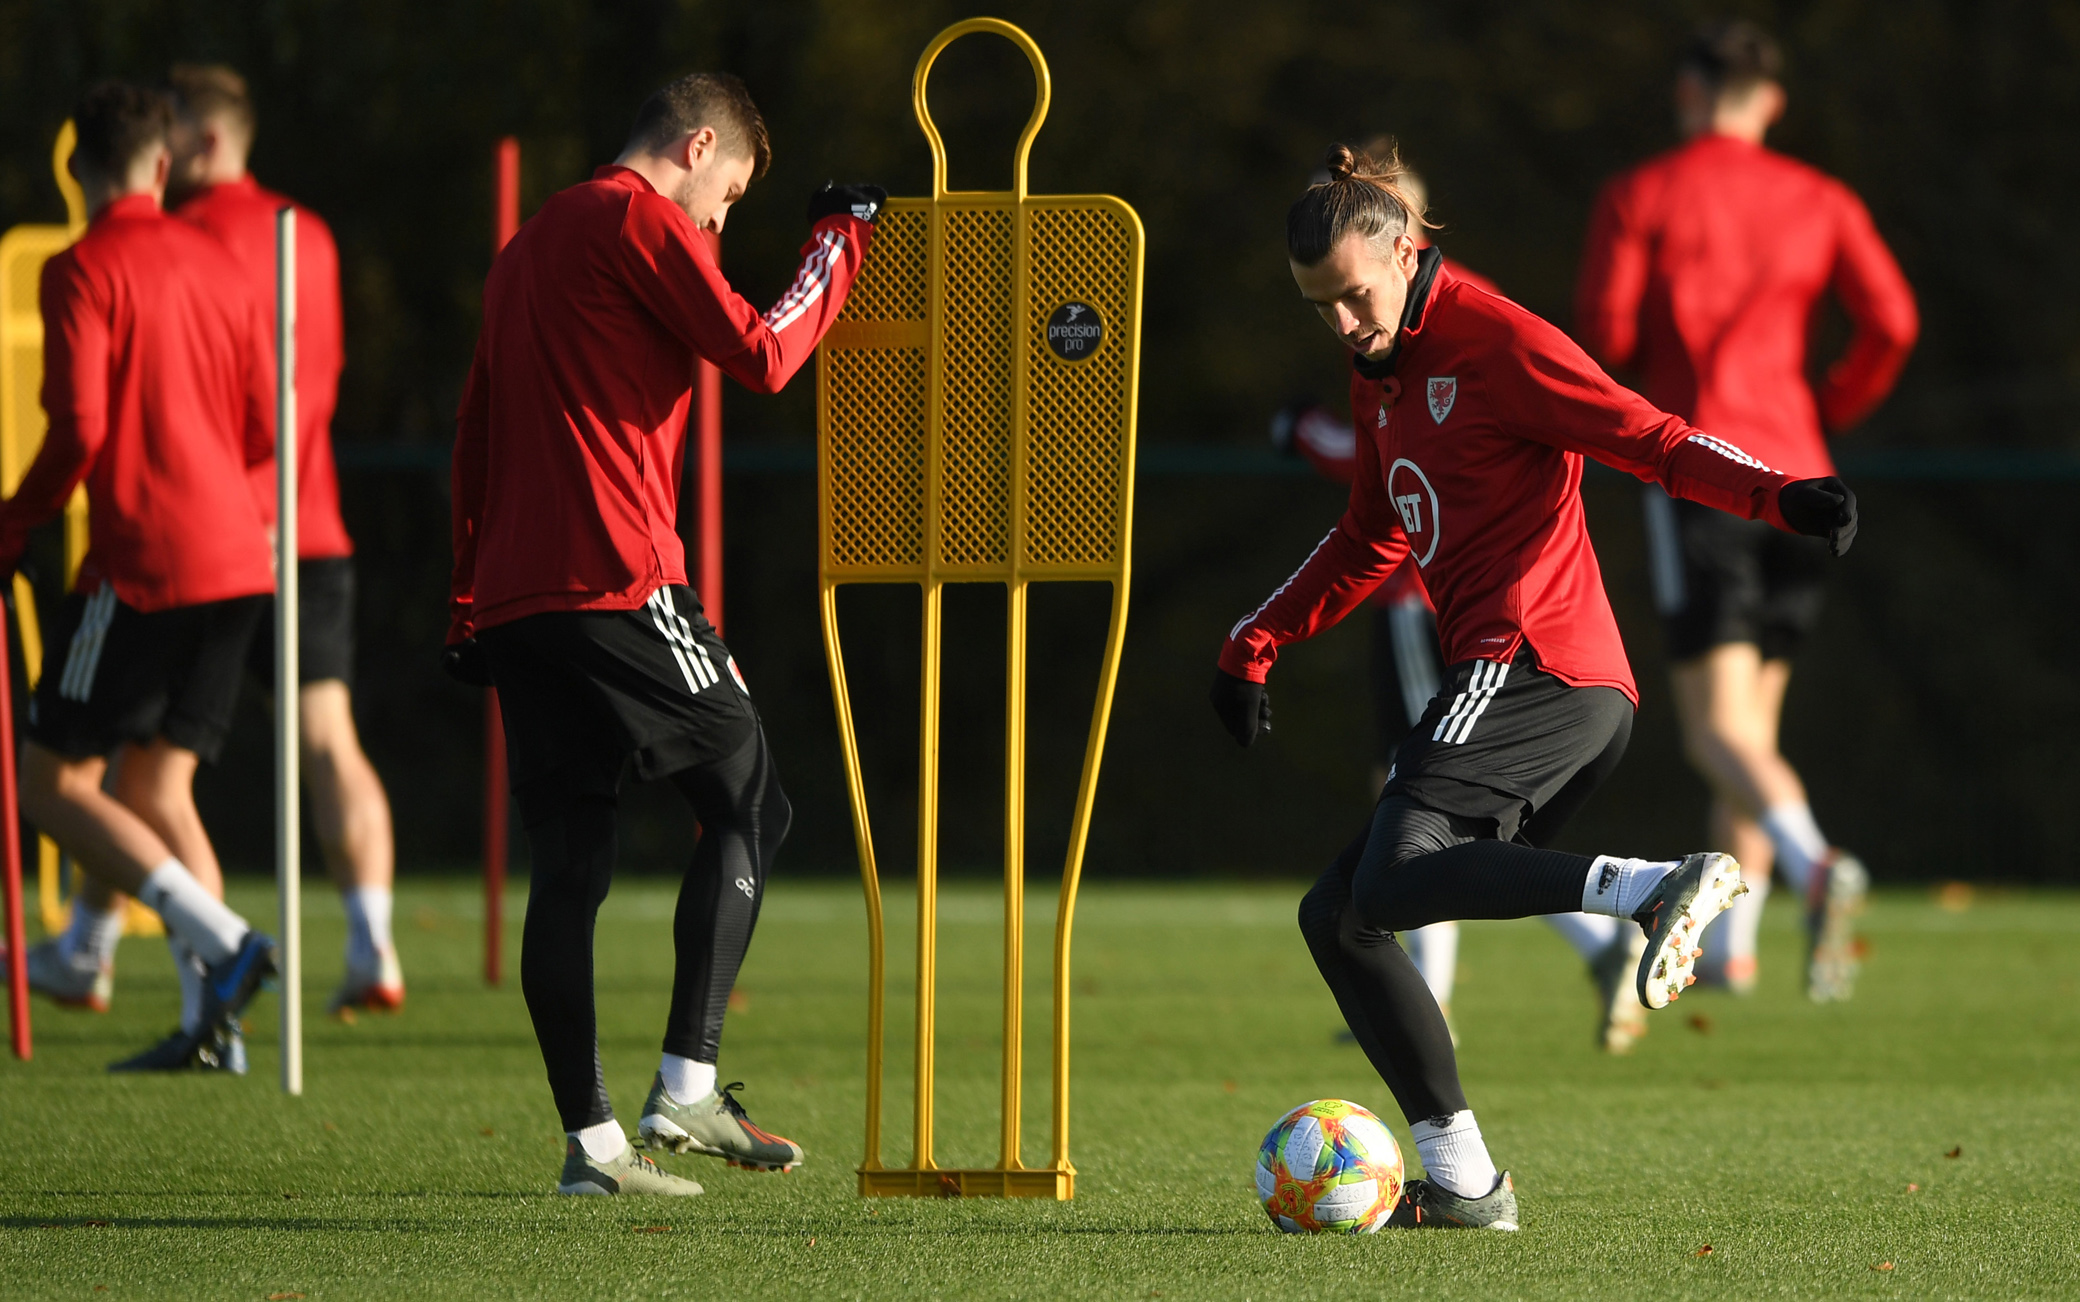 CARDIFF, WALES - NOVEMBER 11: Gareth Bale of Wales(R) controls the ball during a Wales Training Session at the Vale Resort on November 11, 2019 in Cardiff, Wales. (Photo by Harry Trump/Getty Images)